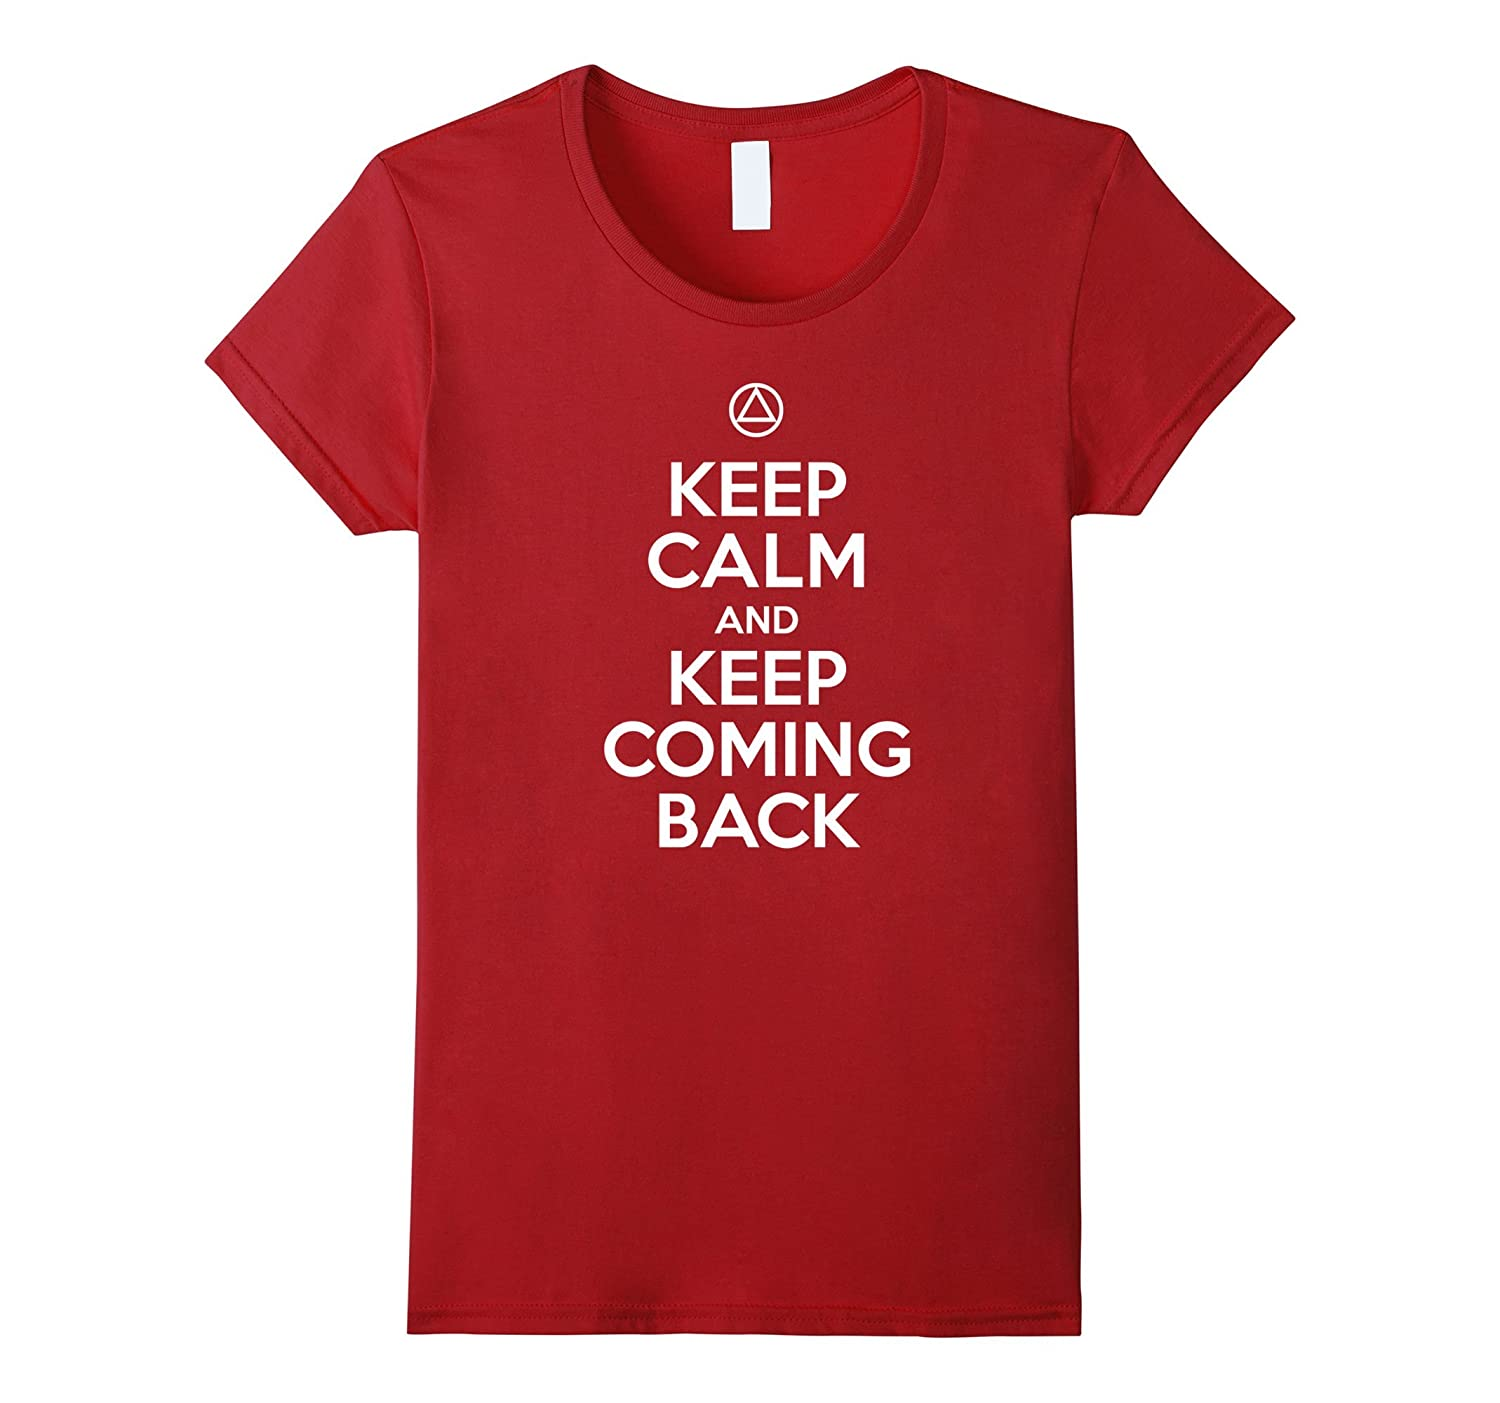 'Keep Calm & Keep Coming Back' – Funny AA Recovery T-Shirt